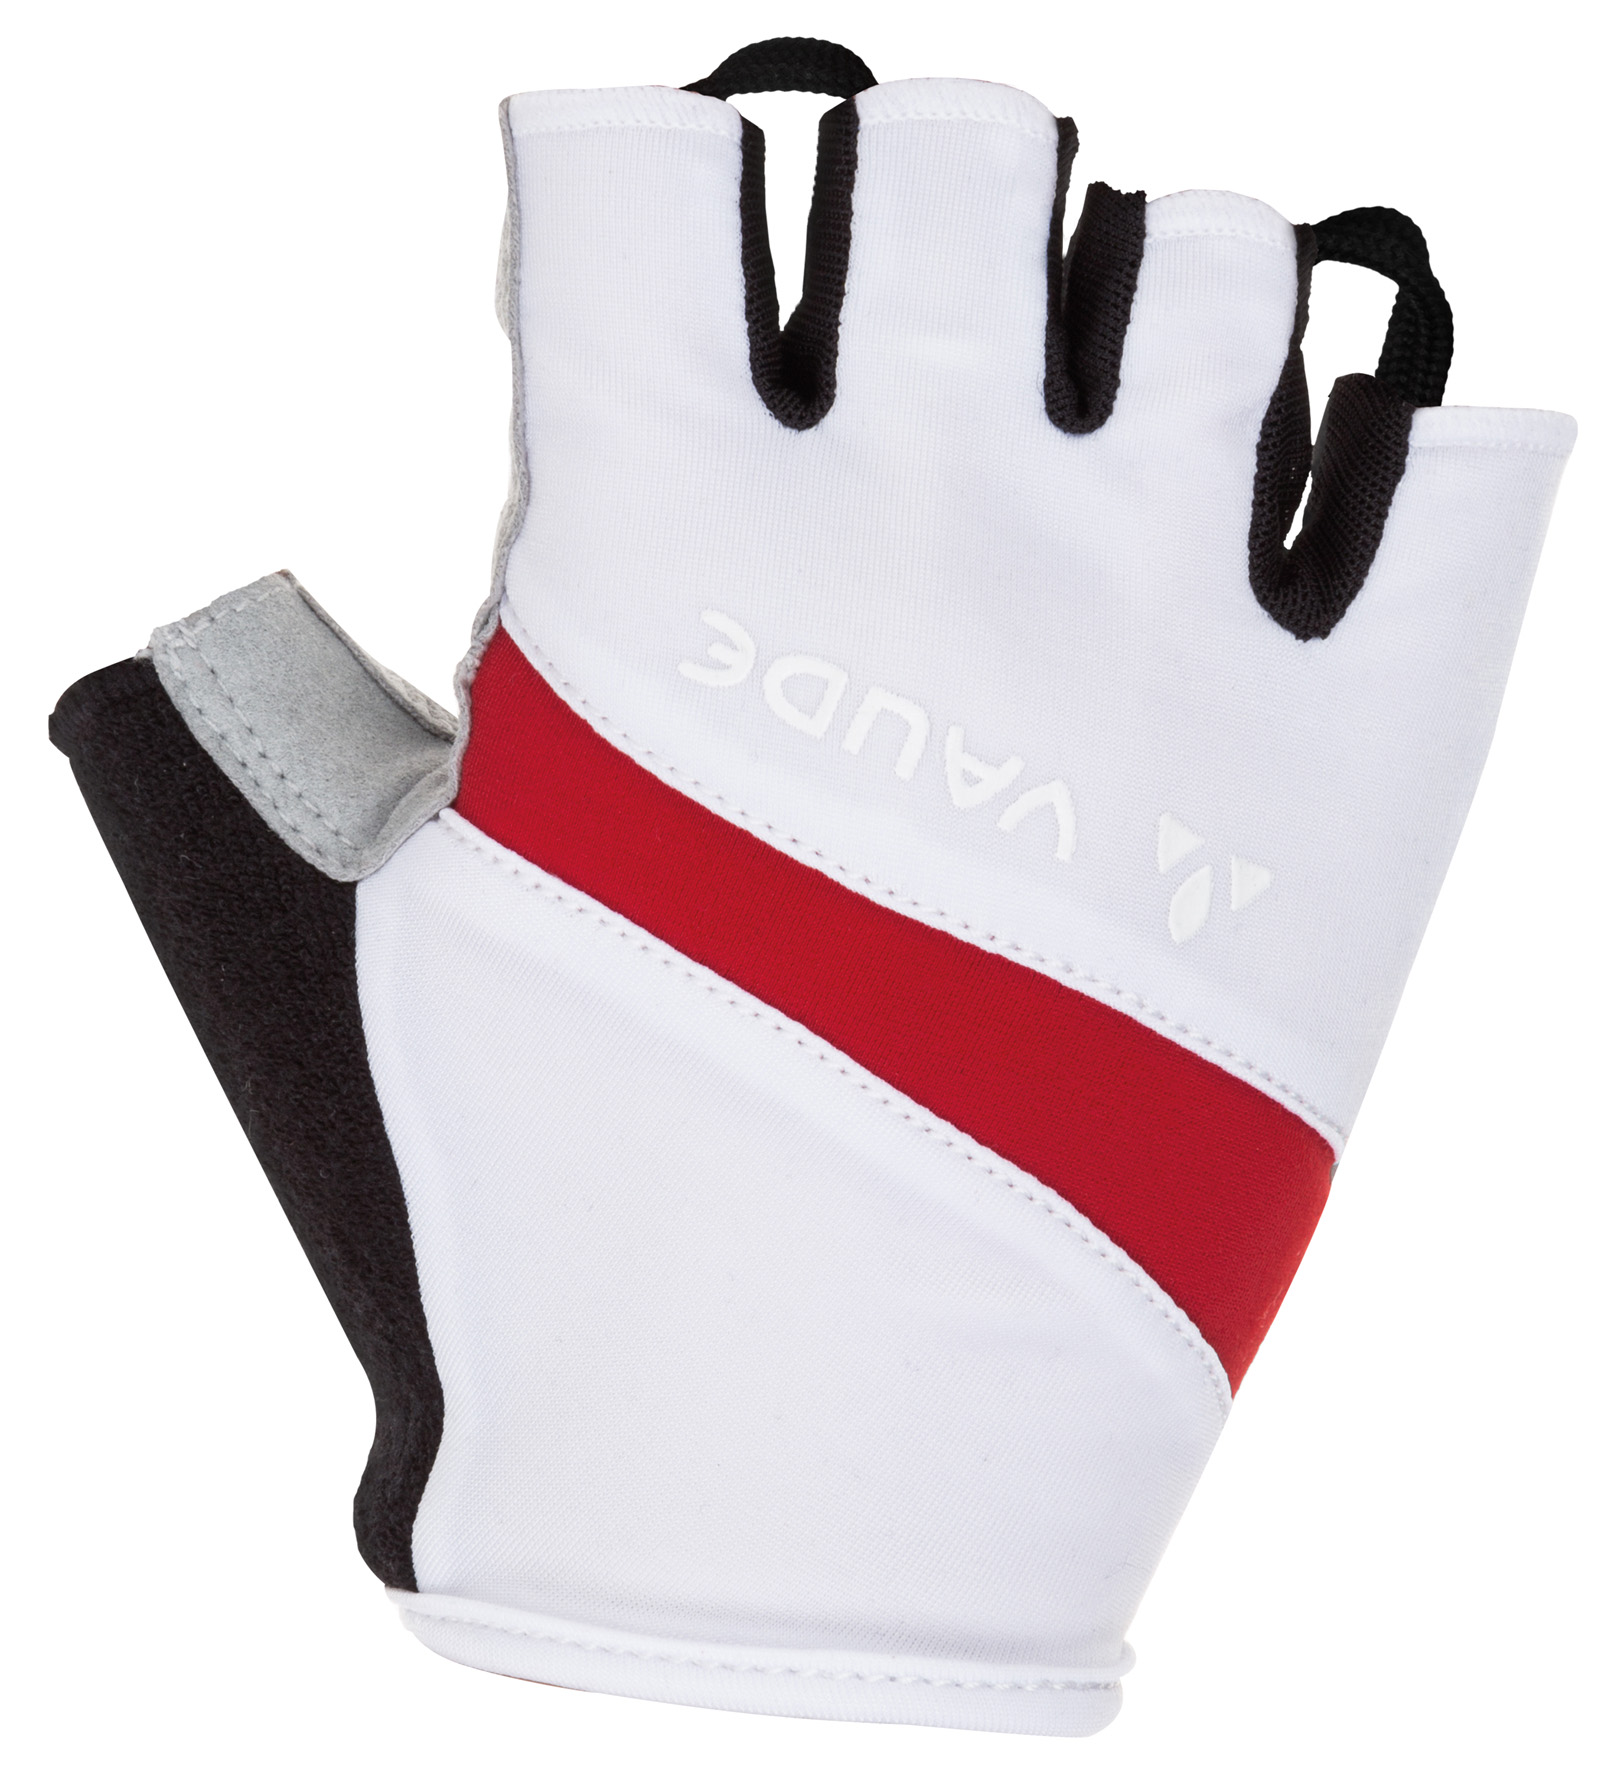 VAUDE Women´s Active Gloves white Größe 9 - VAUDE Women´s Active Gloves white Größe 9